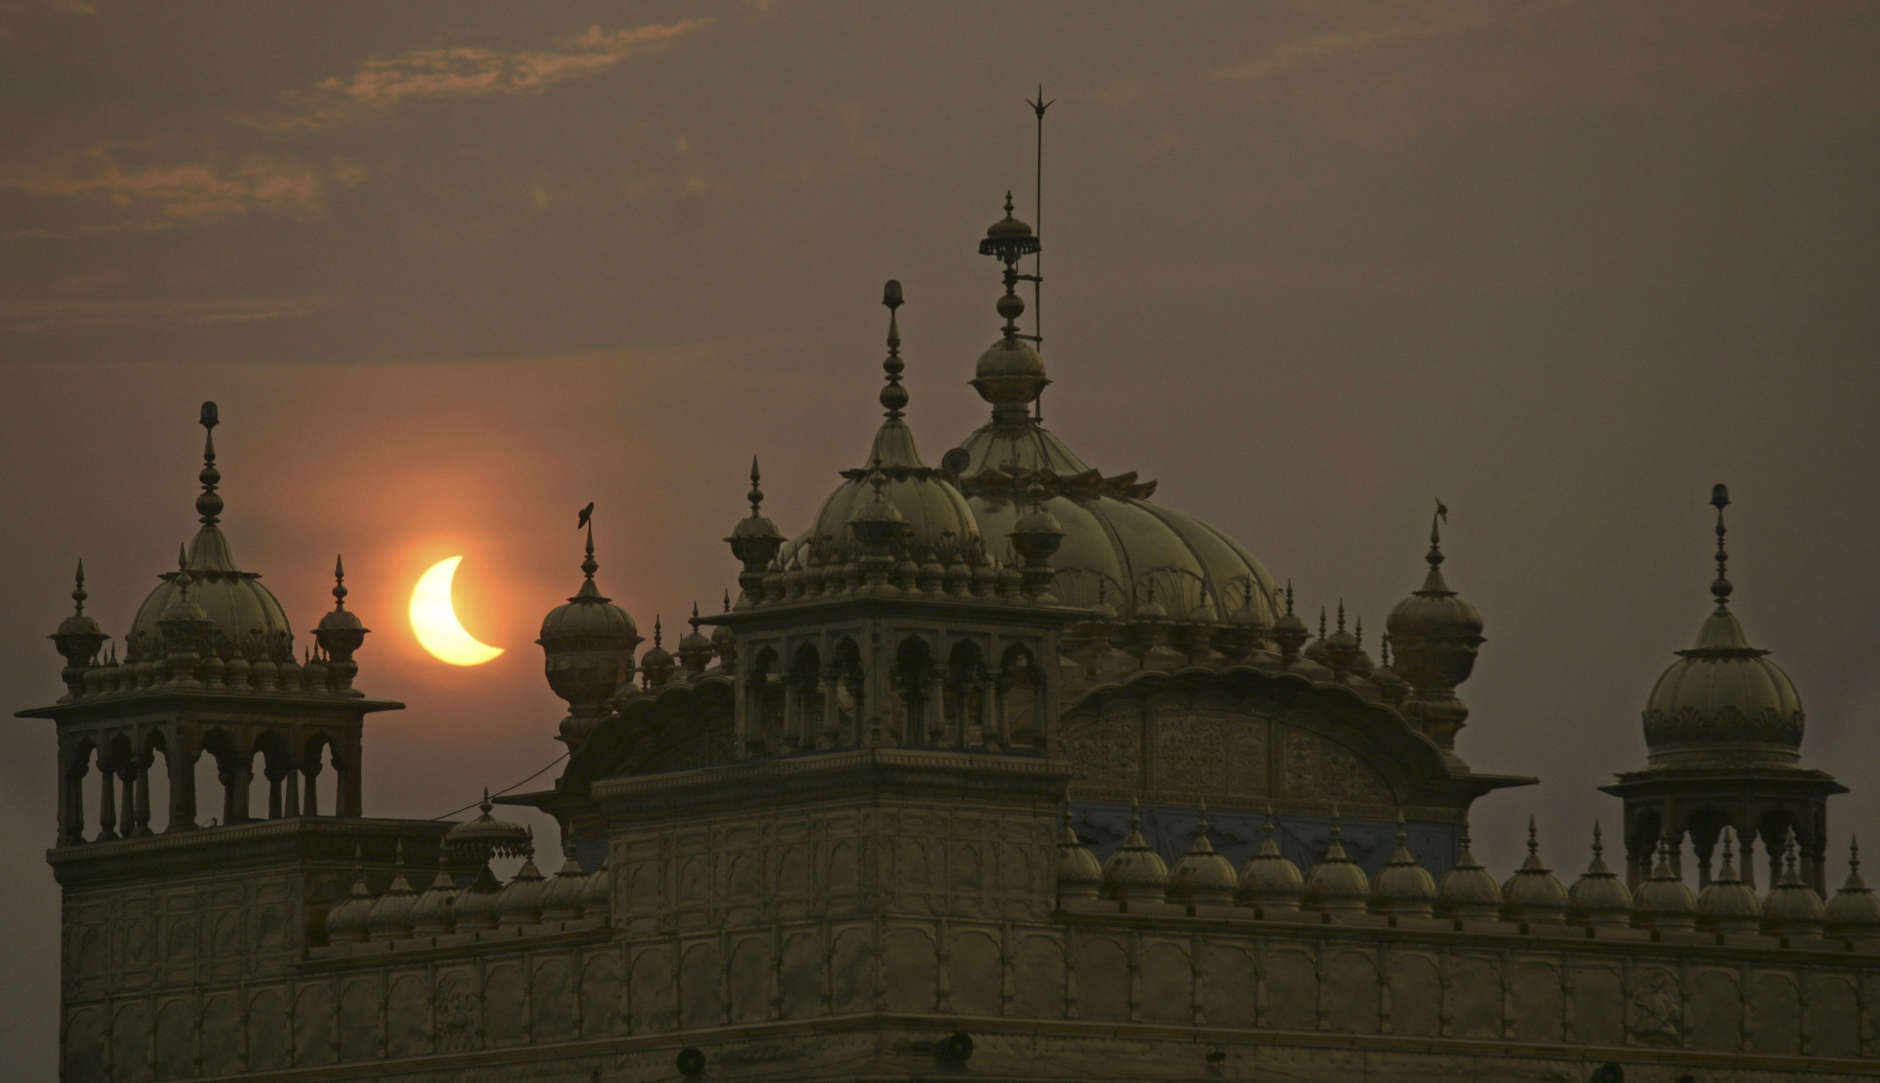 A partial solar eclipse is seen behind the Golden Temple, Sikhs holiest shrine, in Amritsar, India, Wednesday, July 22, 2009. Millions of Asians turned their eyes skyward Wednesday as dawn suddenly turned to darkness across the continent in the longest total solar eclipse this century will see. Millions of others, seeing the rare event as a bad omen, shuttered themselves indoors. (AP Photo/Altaf Qadri)